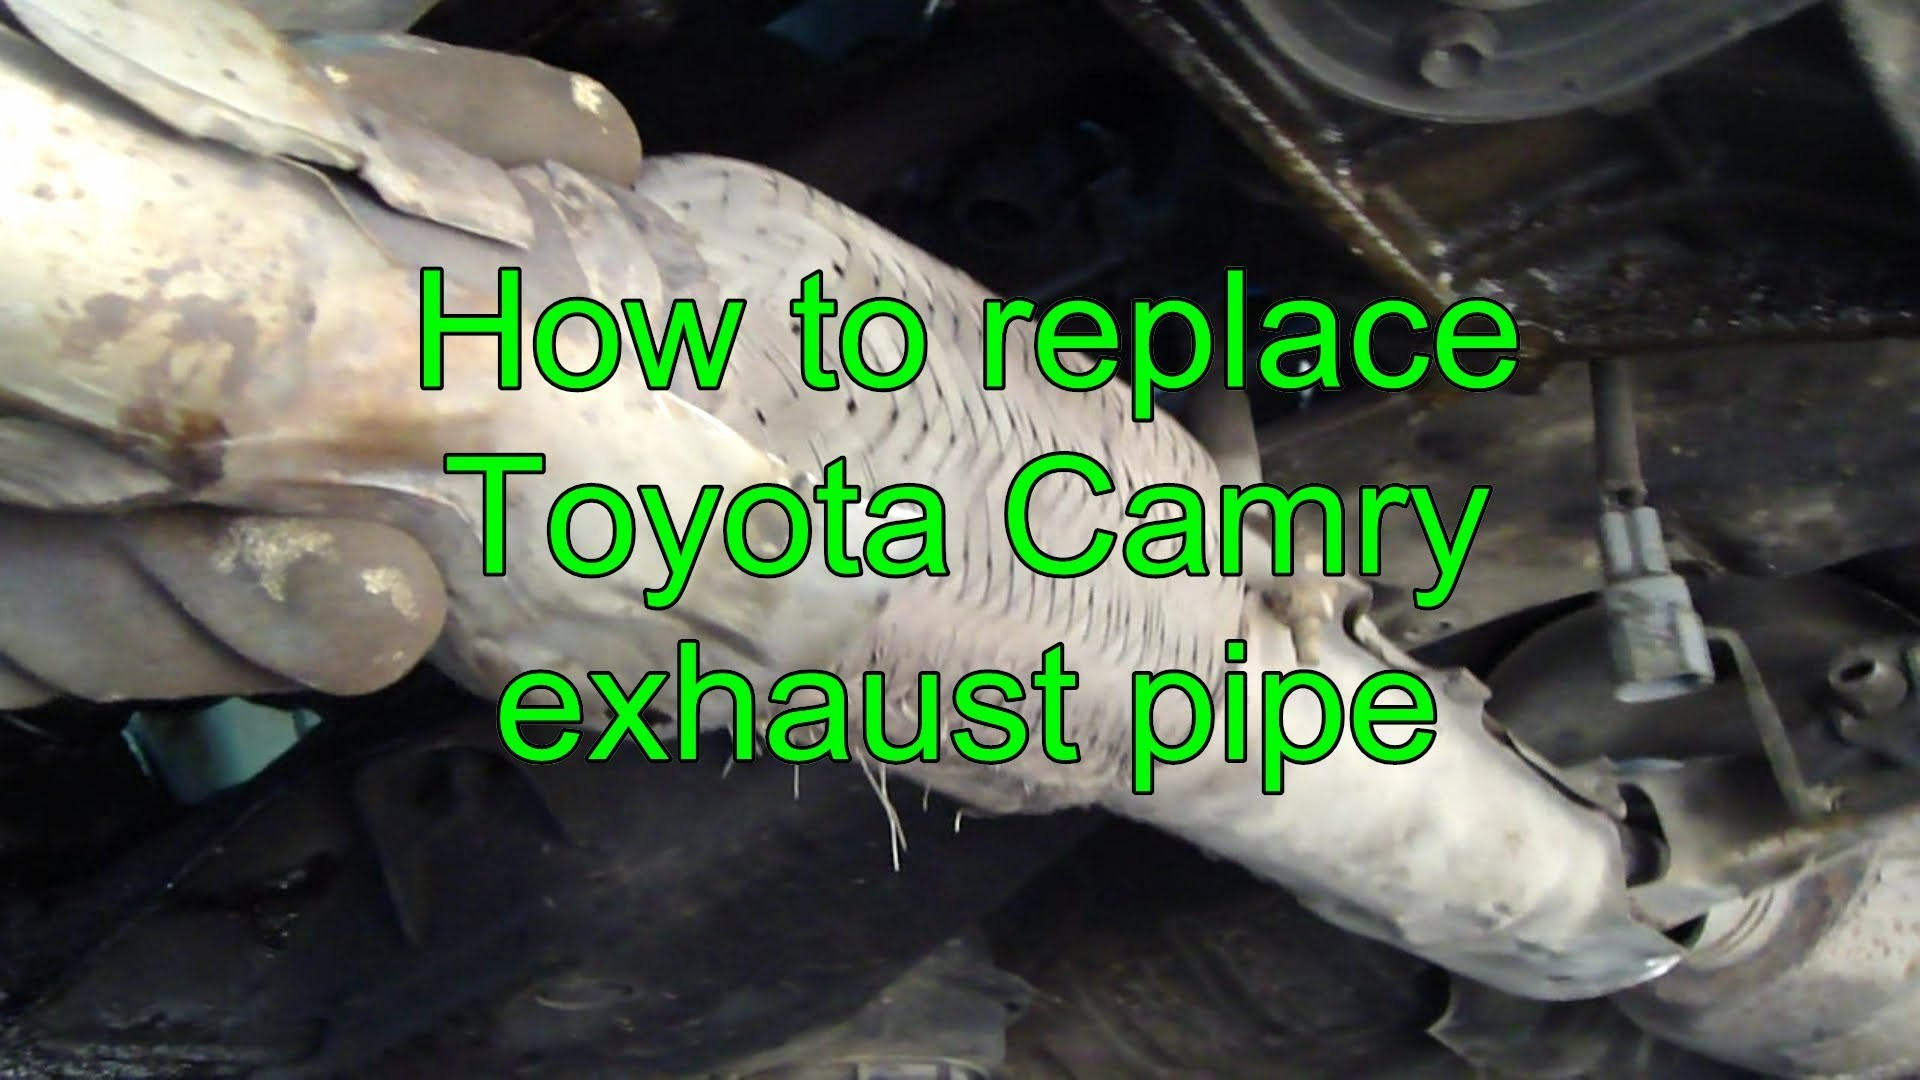 2007 Toyota Camry Engine Diagram How To Replace Exhaust Pipe Years 1992 2002